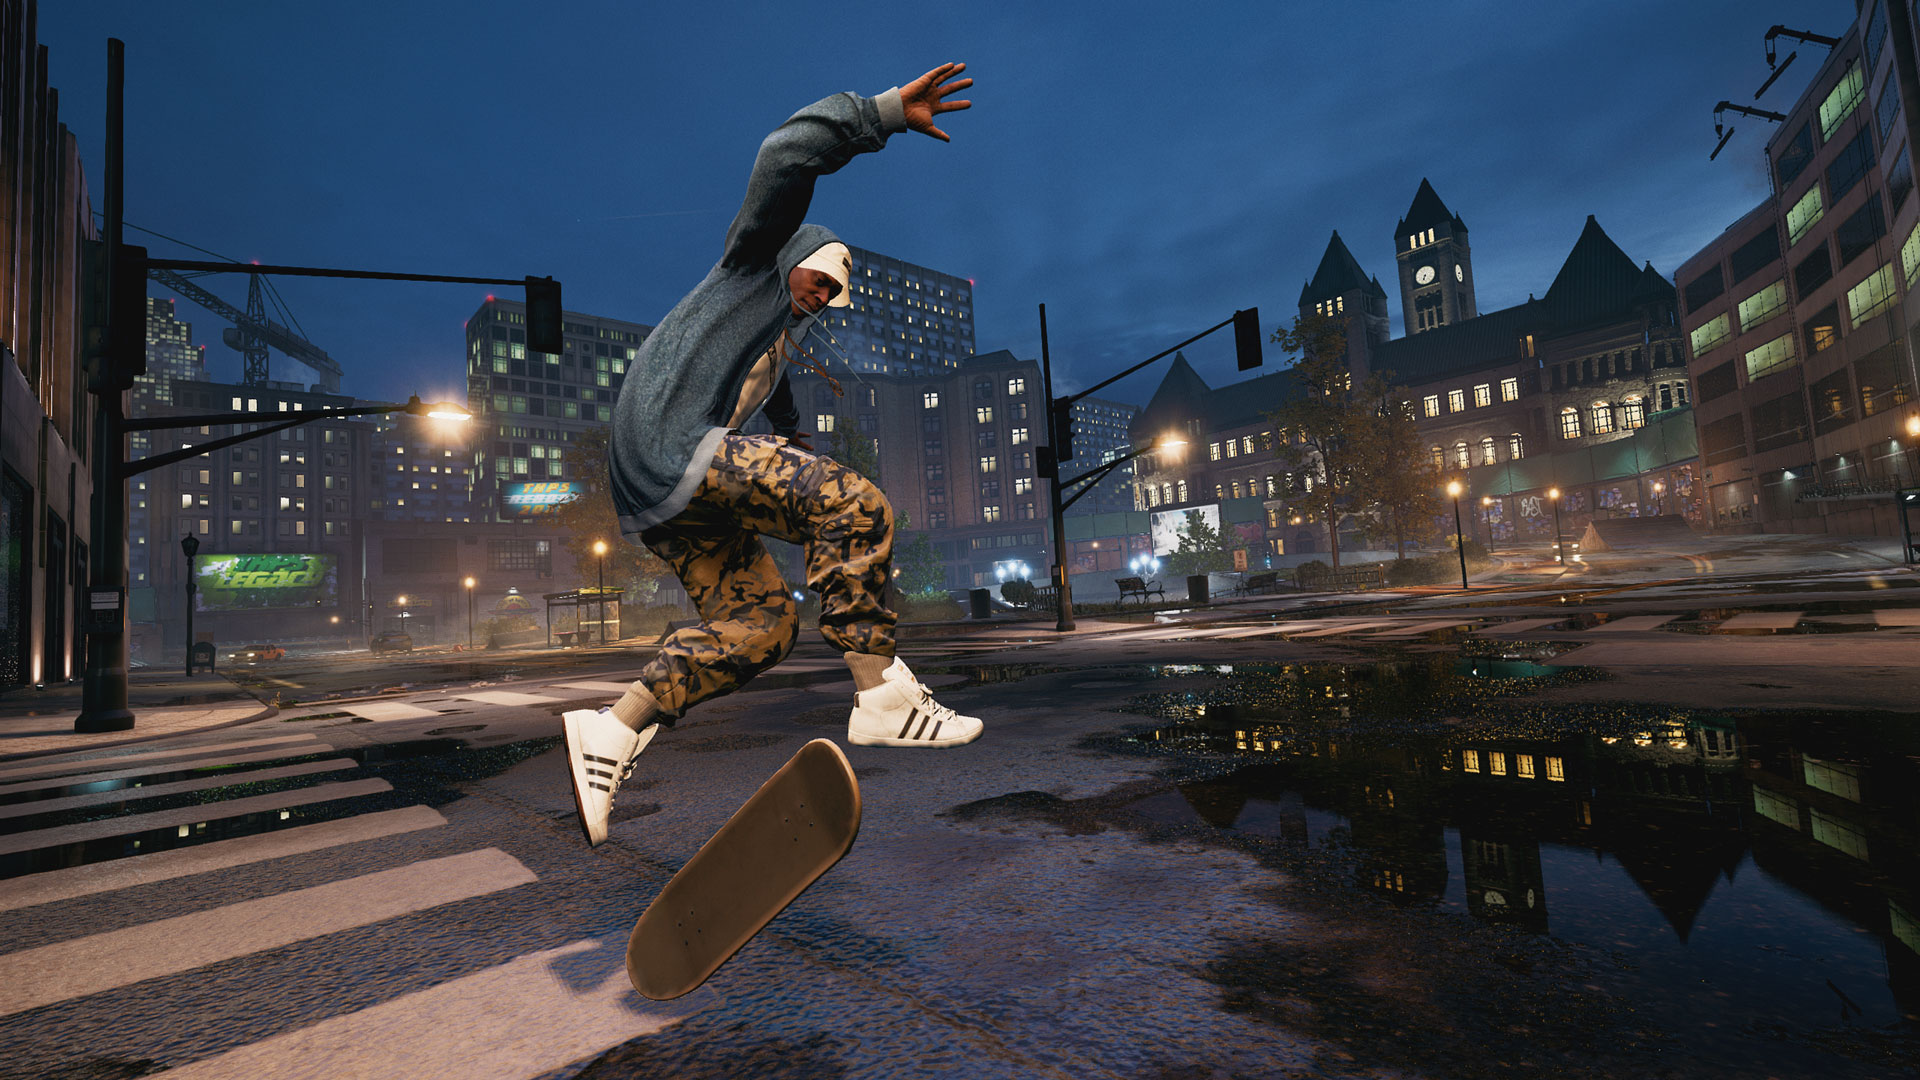 Tony Hawk's Pro Skater 1 and 2 is back